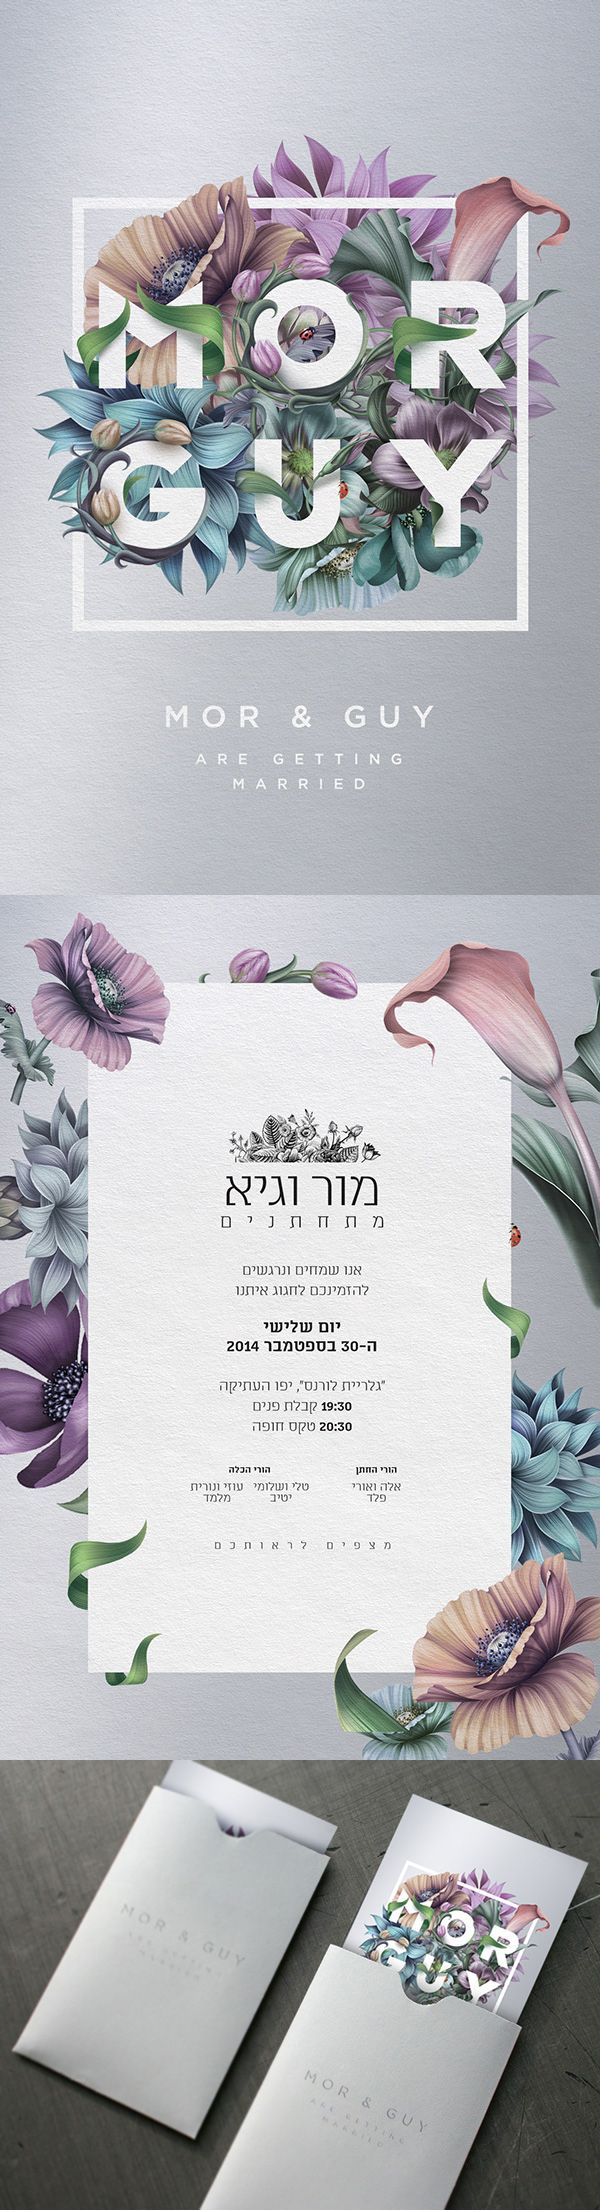 zazzle wedding invitations promo code%0A Top    Boho Wedding Invitations  Pretty Florals   Feathers   Boho  Floral  and Weddings